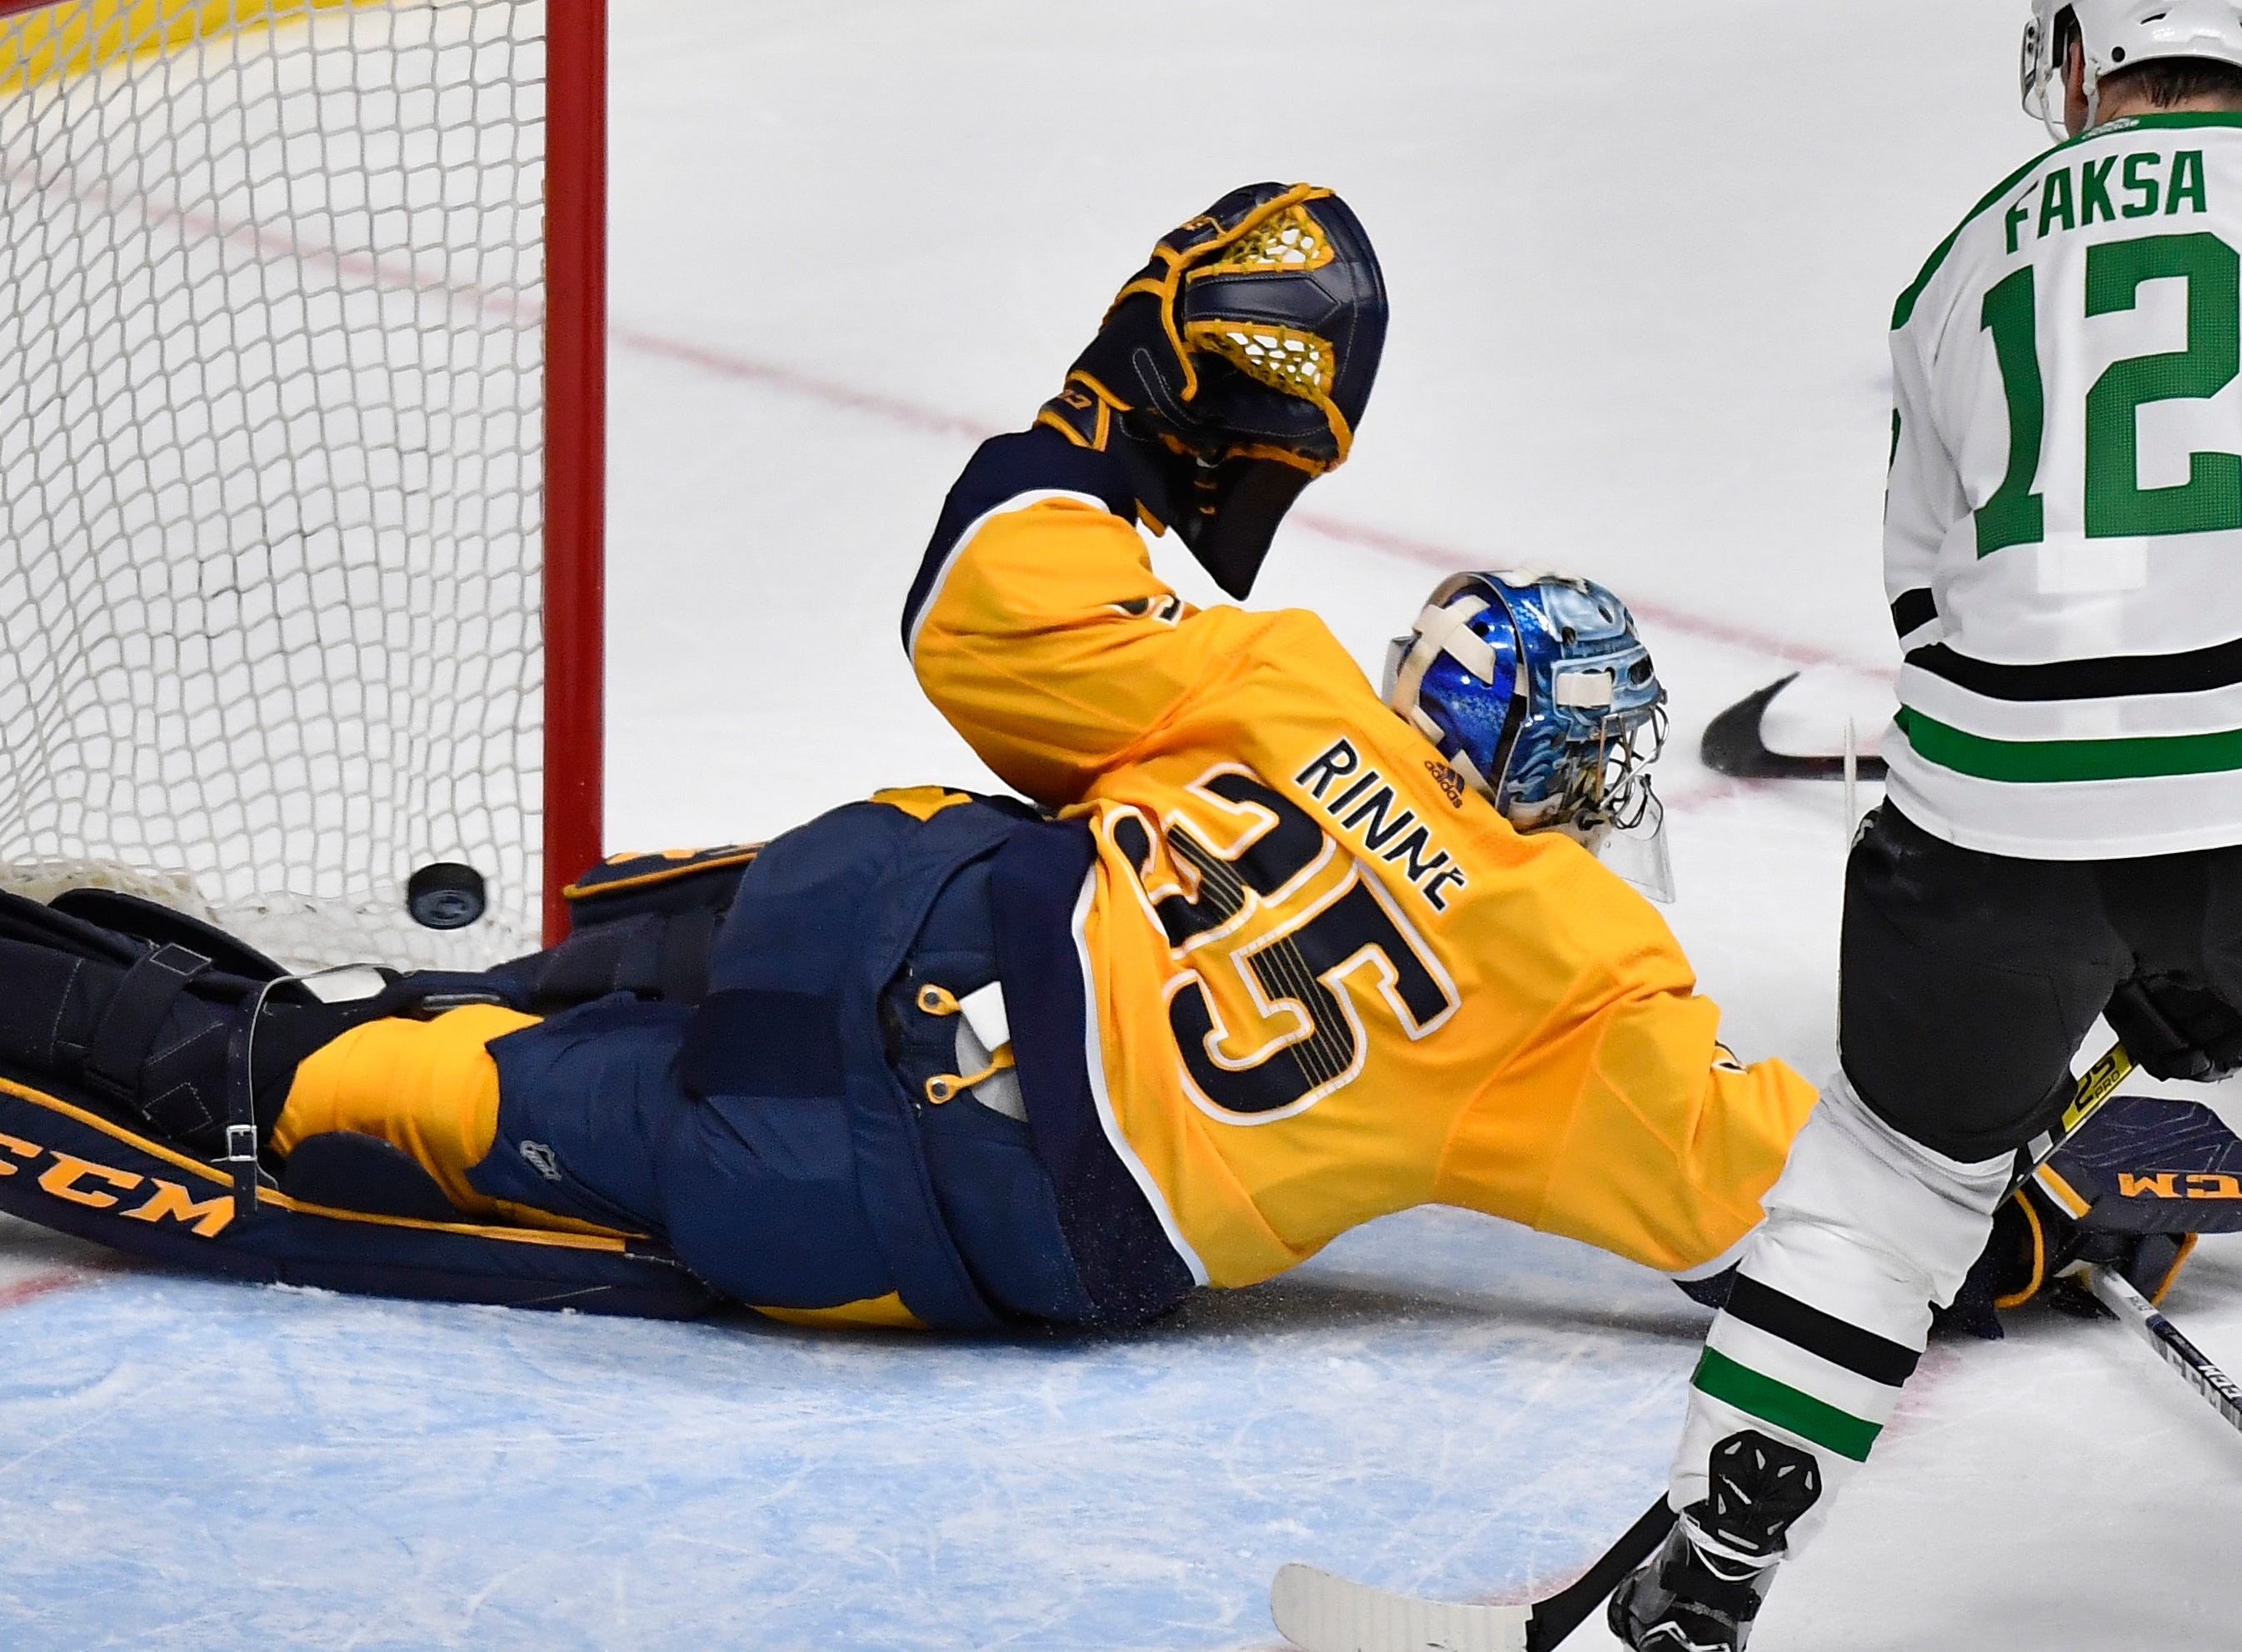 Nashville Predators goaltender Pekka Rinne (35) blocks a Dallas shot during the first period of the divisional semifinal game at Bridgestone Arena in Nashville, Tenn., Wednesday, April 10, 2019.